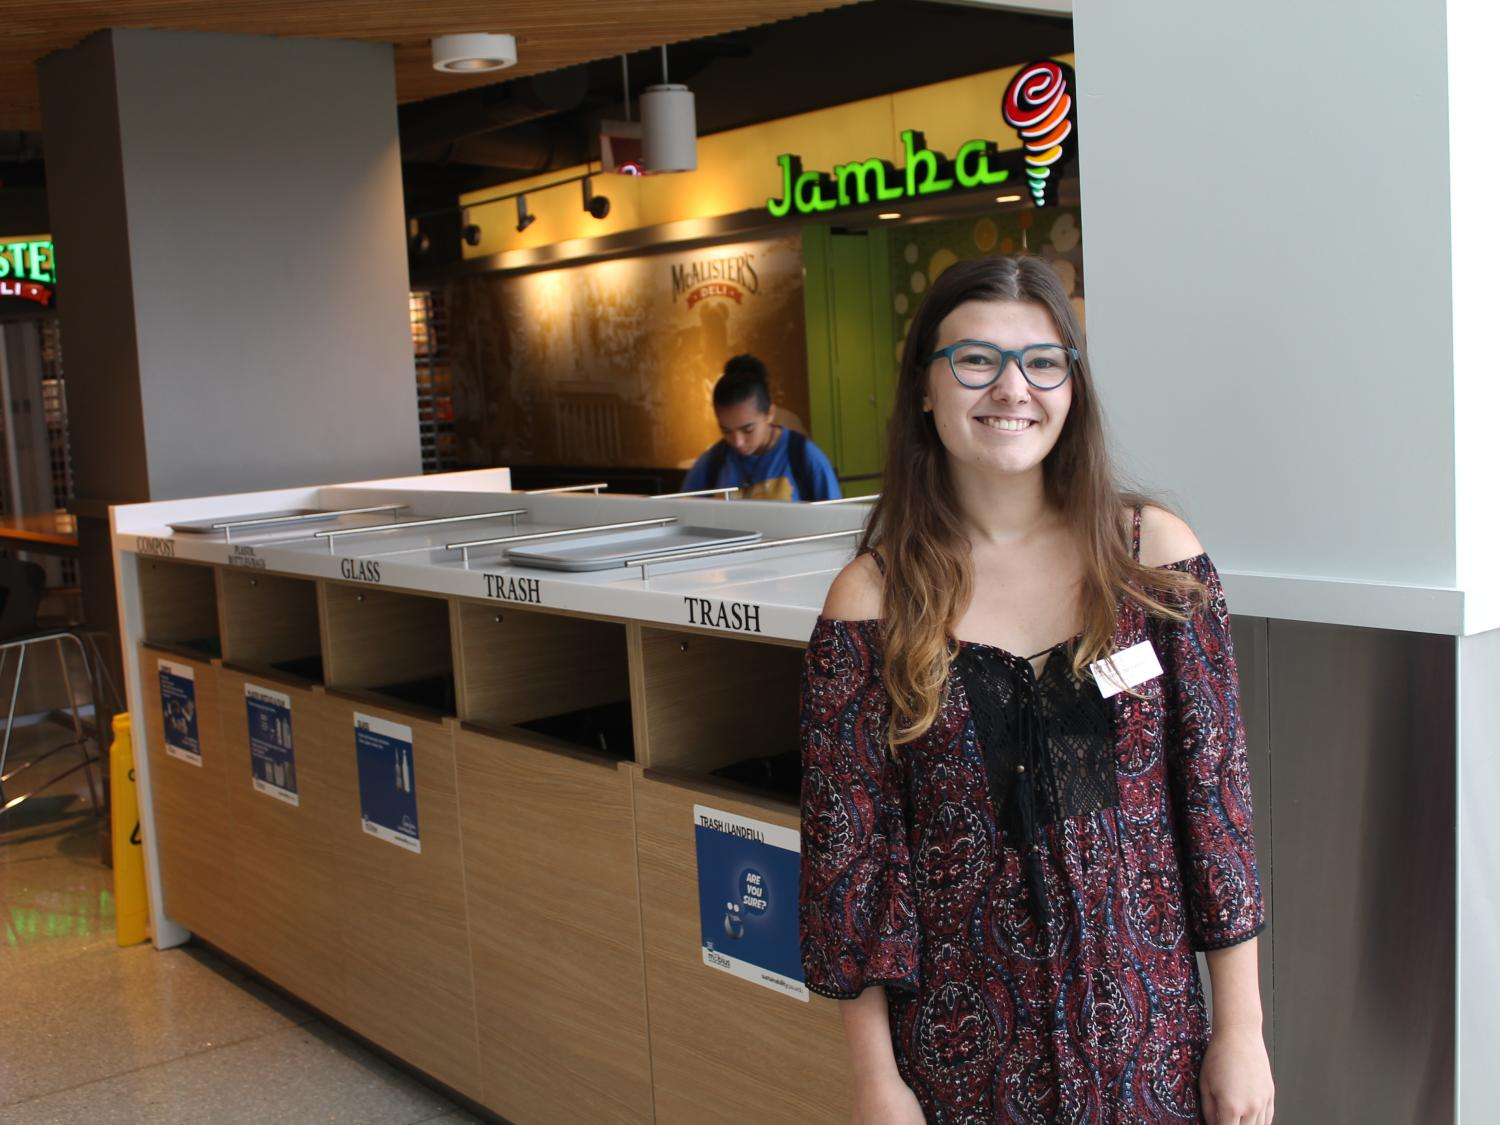 Anna Sostarecz joins Housing and Food Services as sustainability coordinator